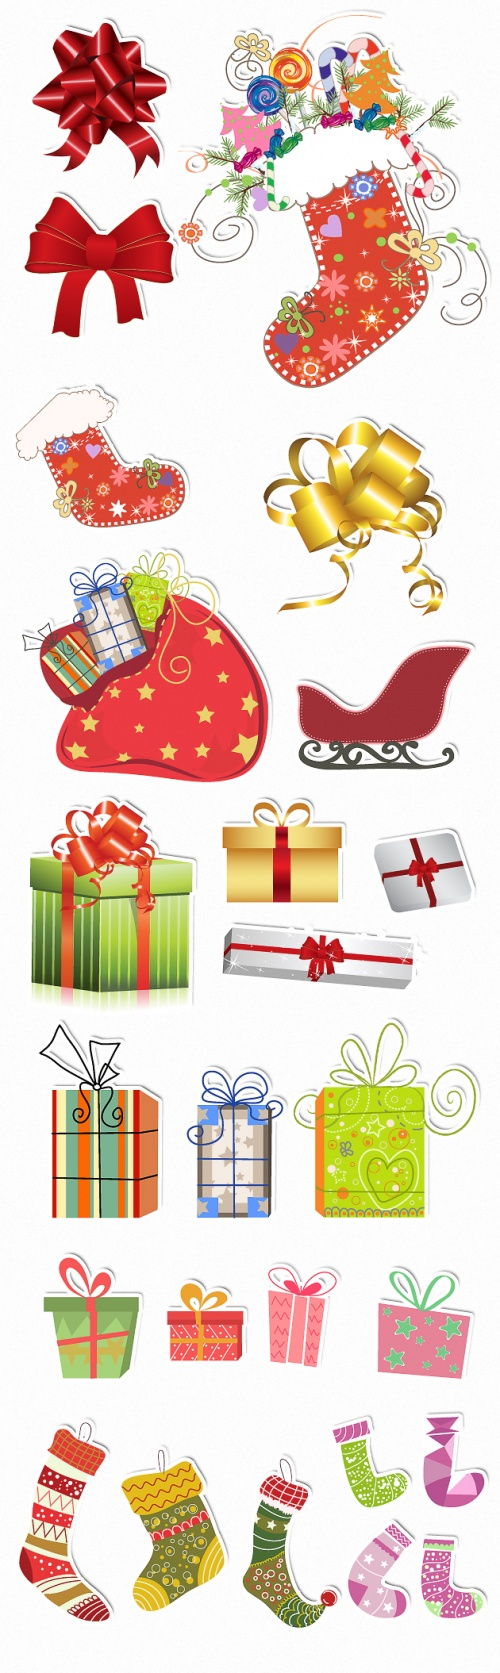 Designtnt - Christmas Vector Ornaments Set 1